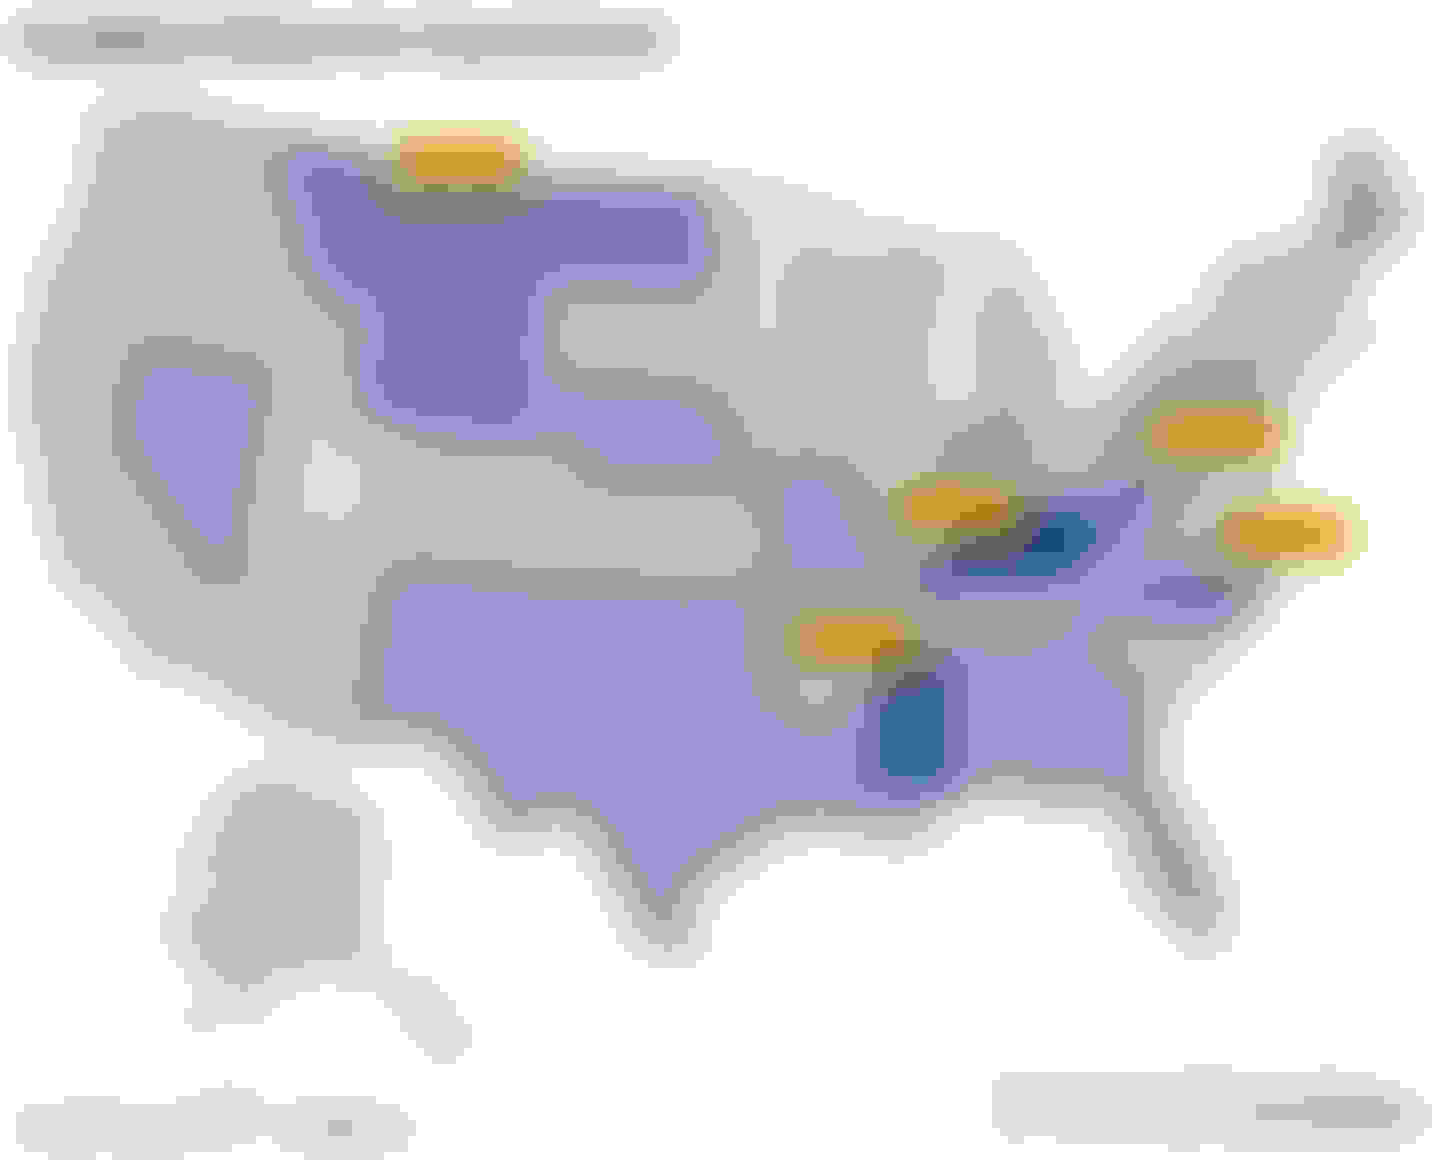 Heat map of the most dangerous states for teen drivers.